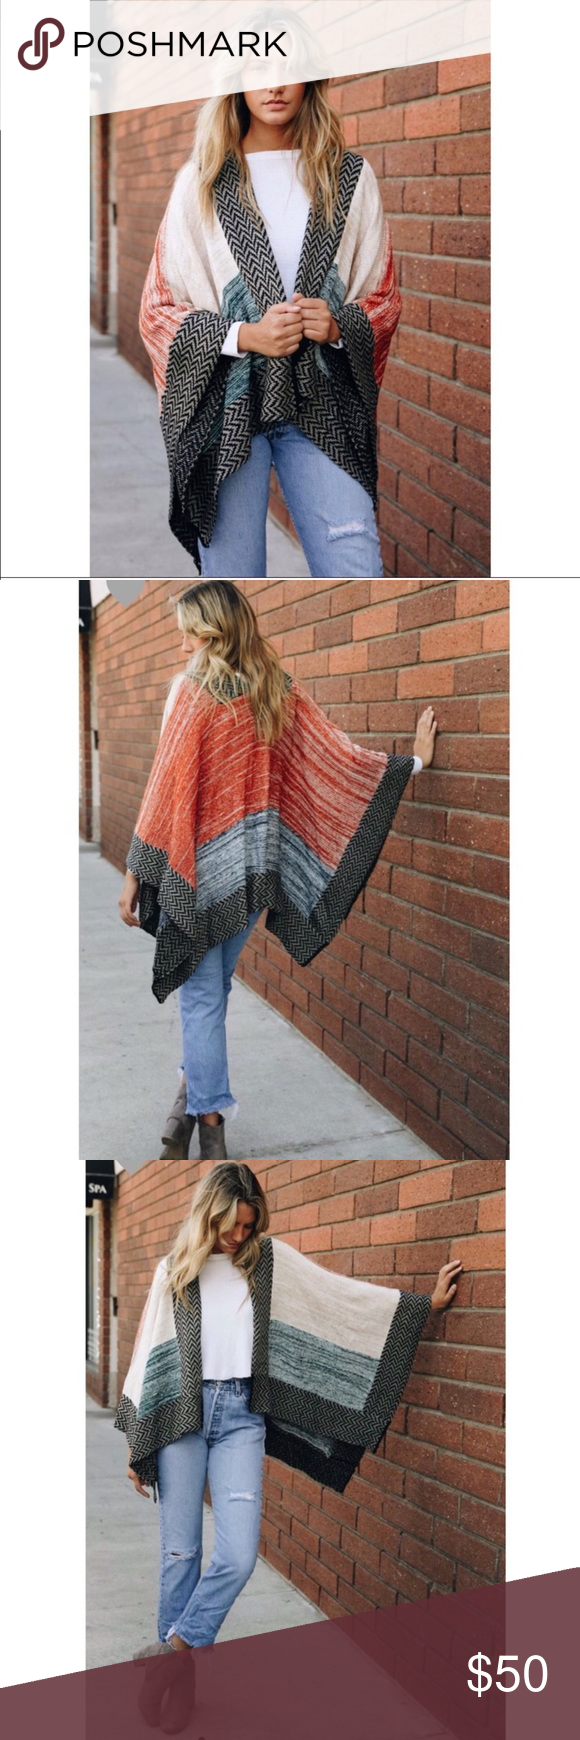 "Space Knit Color Block Poncho ✨ Acrylic ✨ 25"" x 46"" ✨ One Size ✨ Red…"